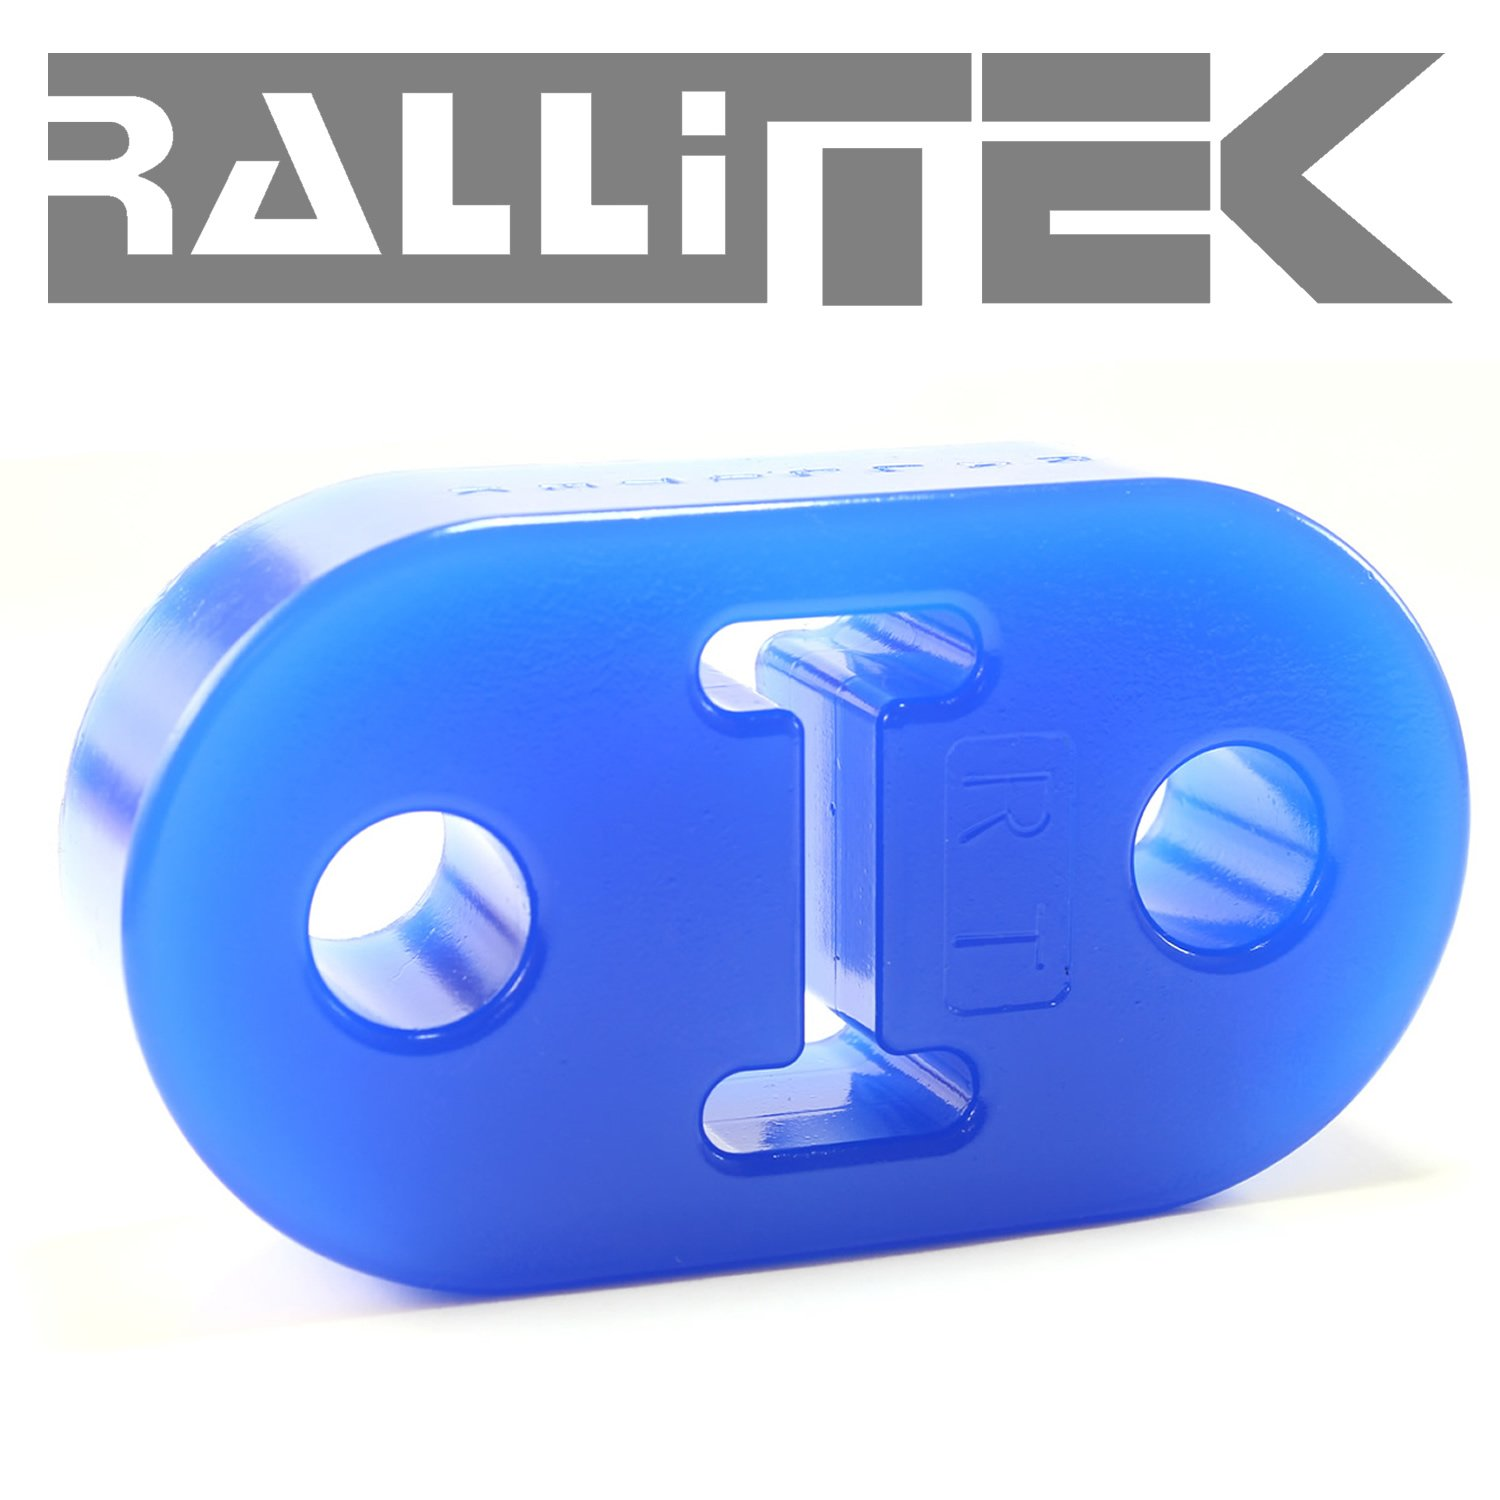 RalliTEK 60mm Long Polyurethane Exhaust Hanger w/15mm ID - WRX 02-07/STI 04-07/Forester 98-07/Legacy 90-04/Outback 00-04 by Rallitek